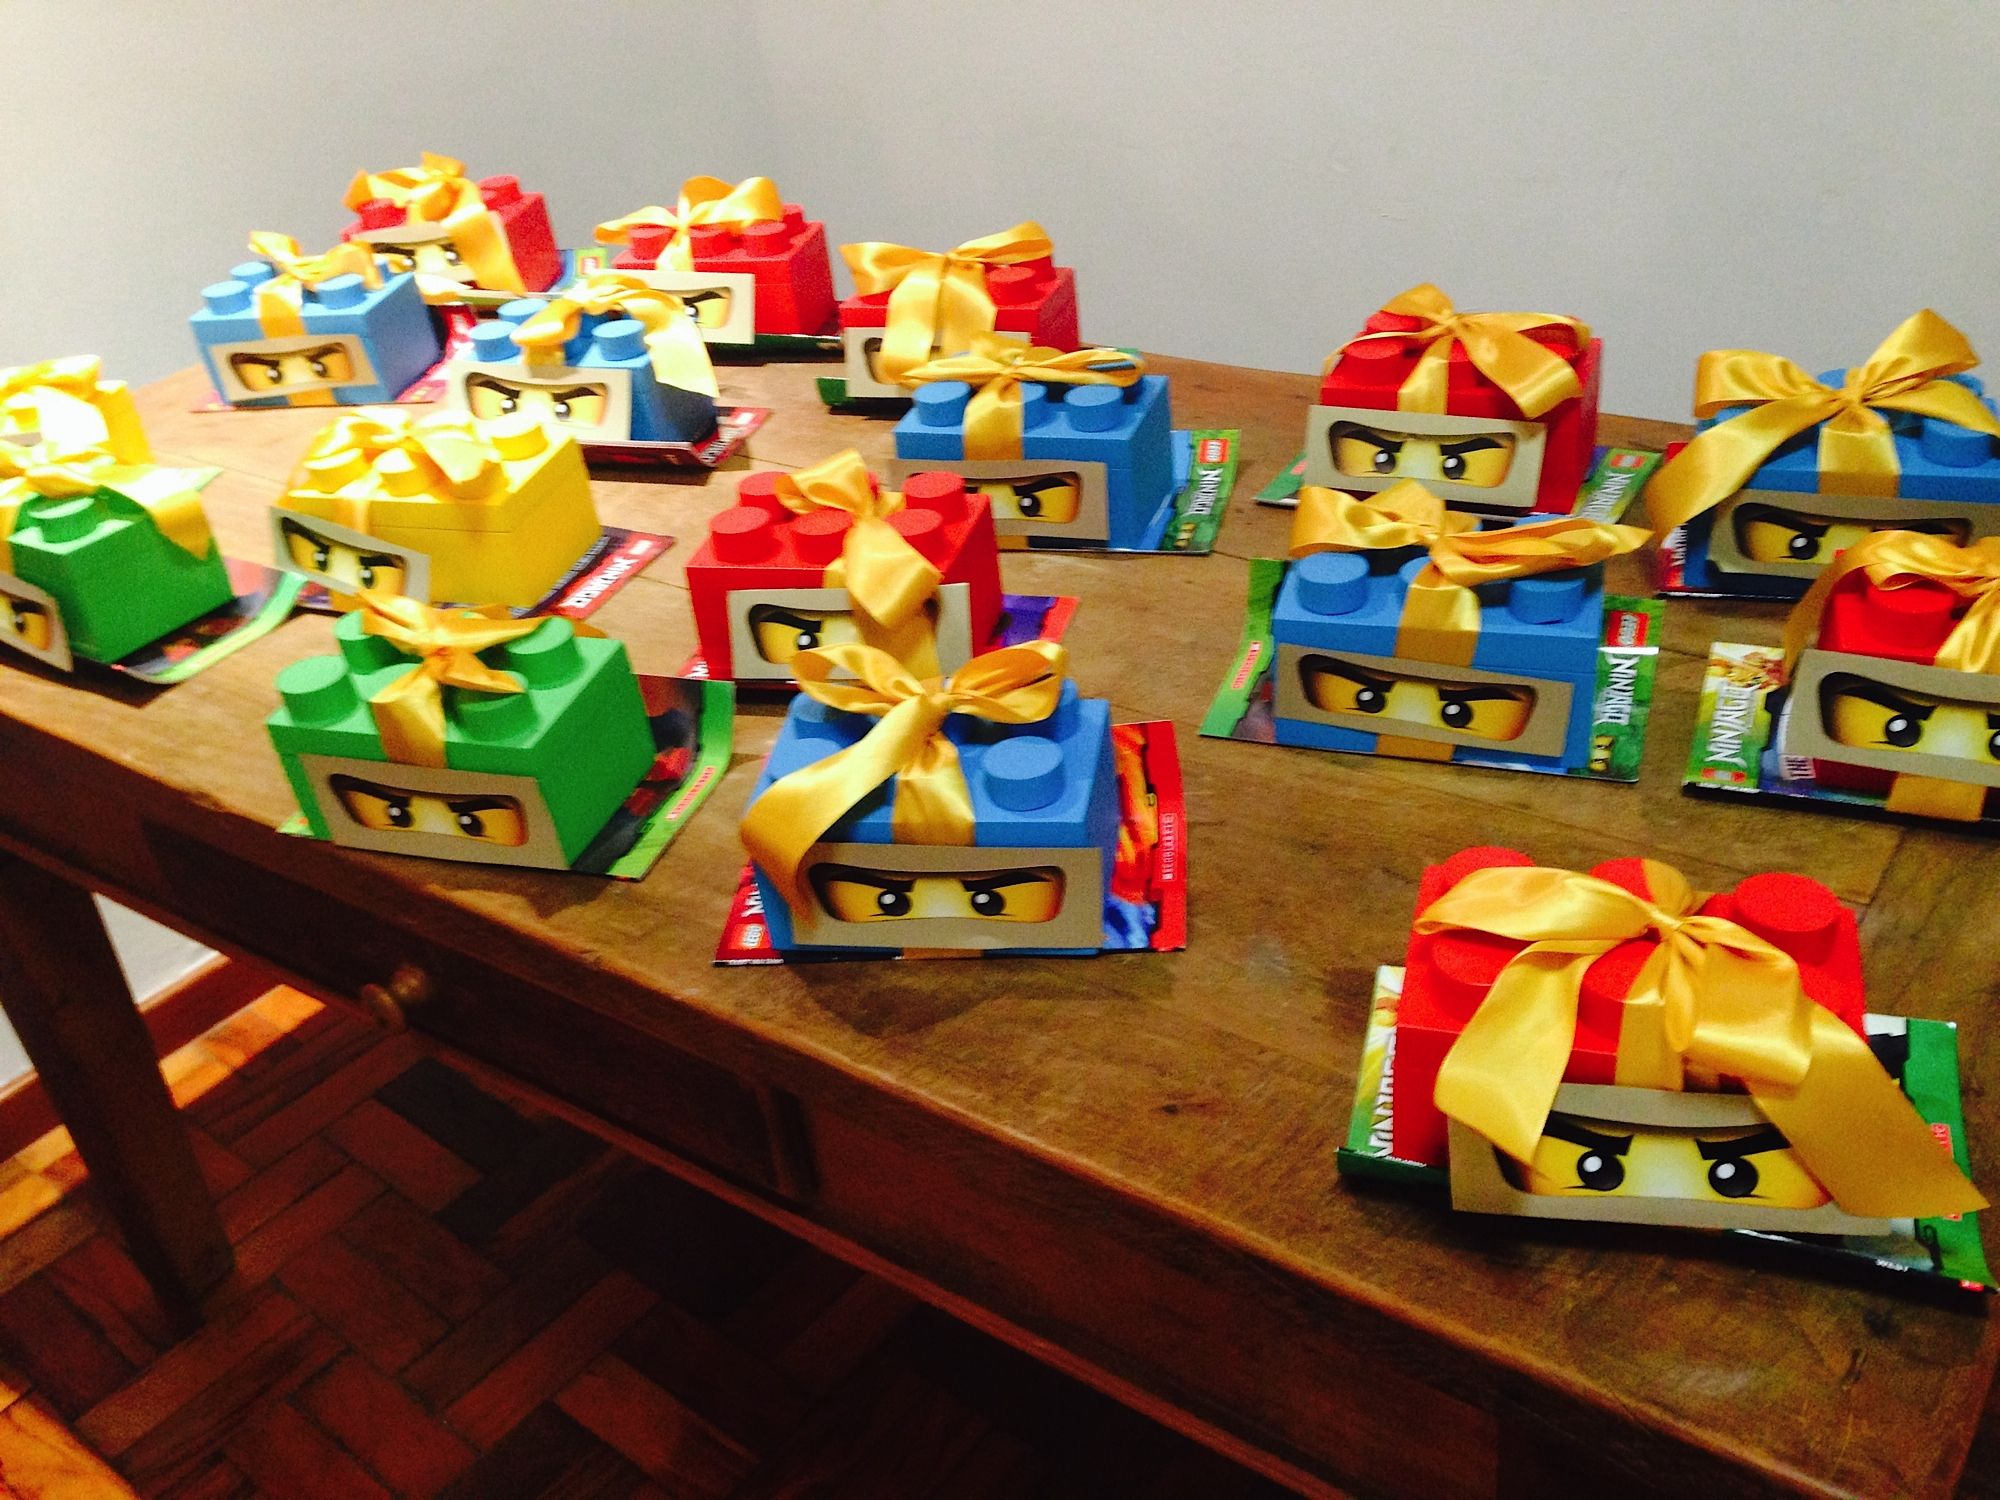 Lego ninjago party favors lego party otto pinterest for Decoration ideas 7th birthday party